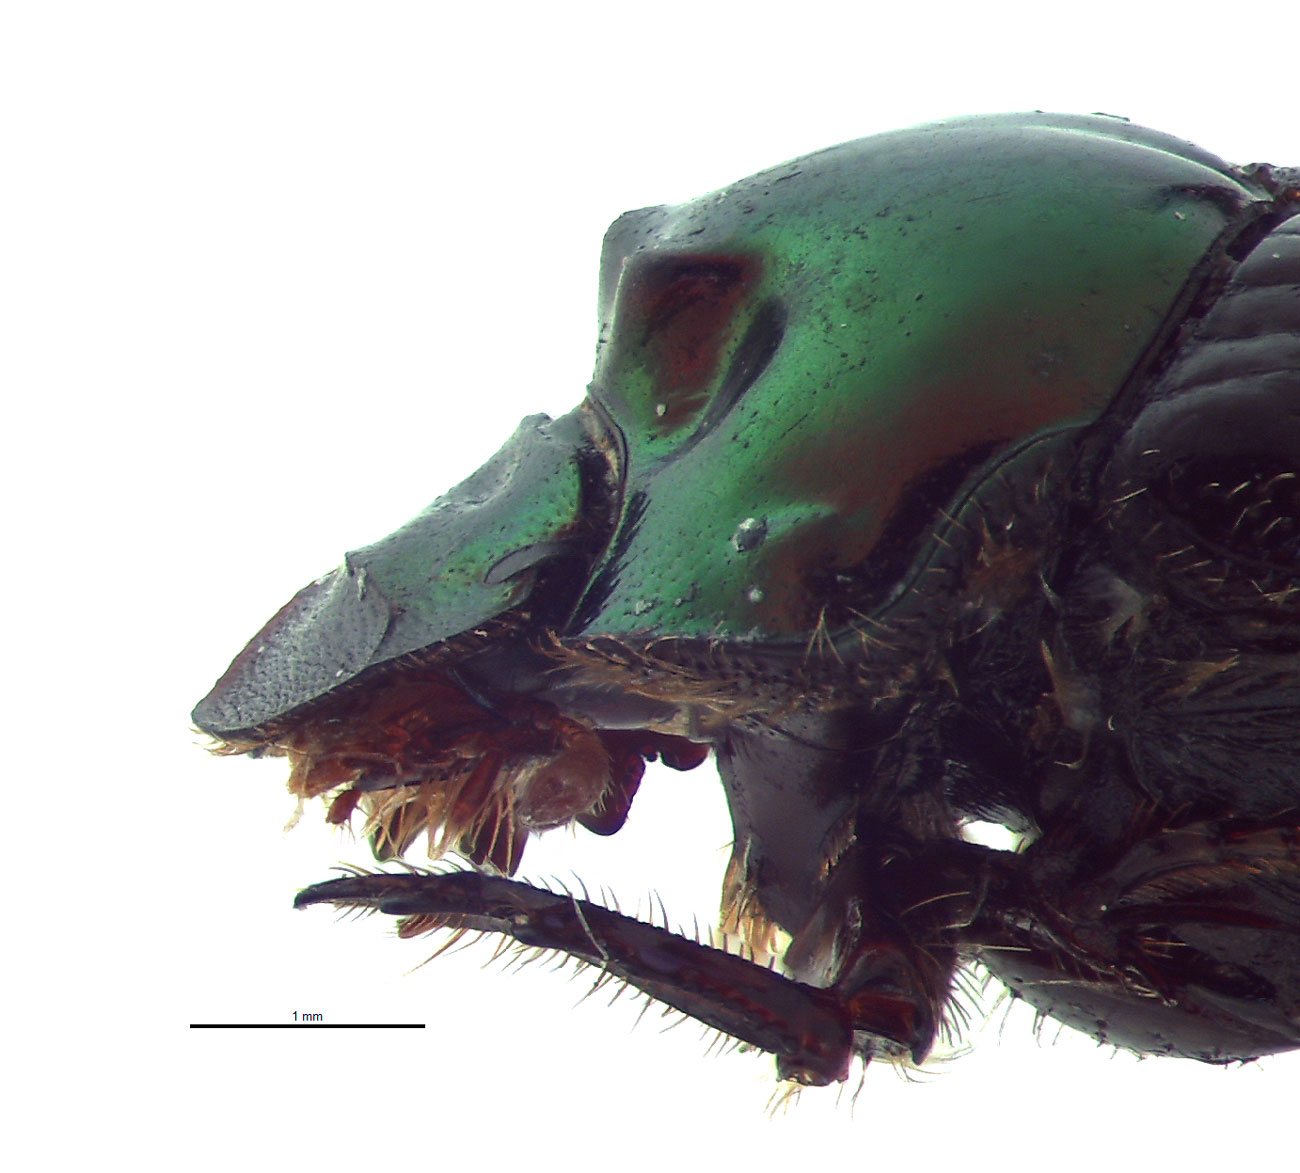 Onthophagus cuniculus female; photo by E.L. Engasser